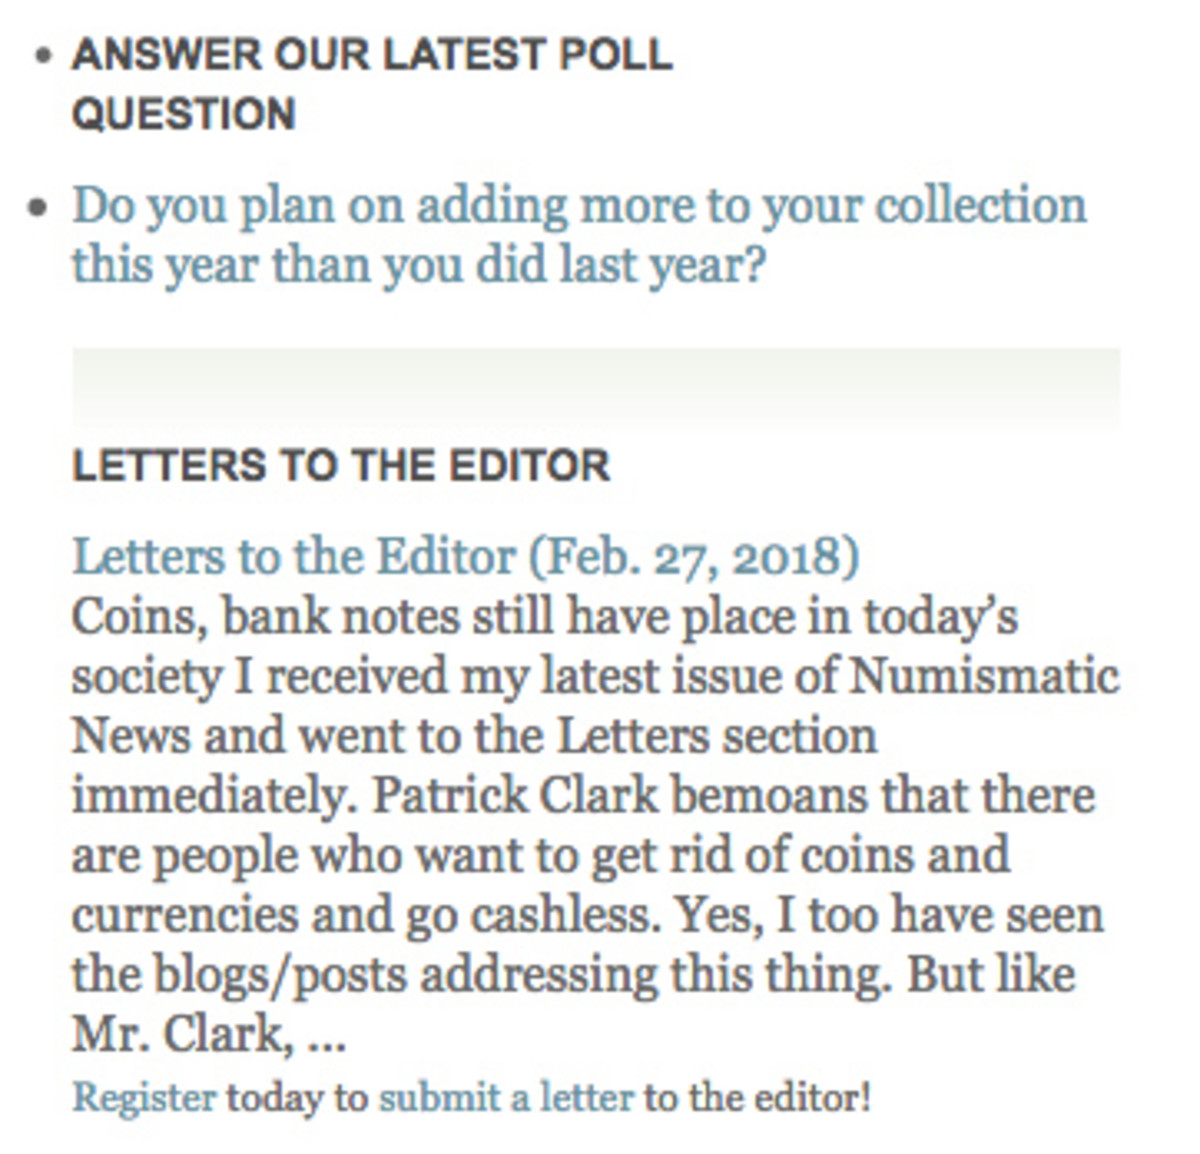 You can find the latest Poll question each week on the home page of NumismaticNews.net.